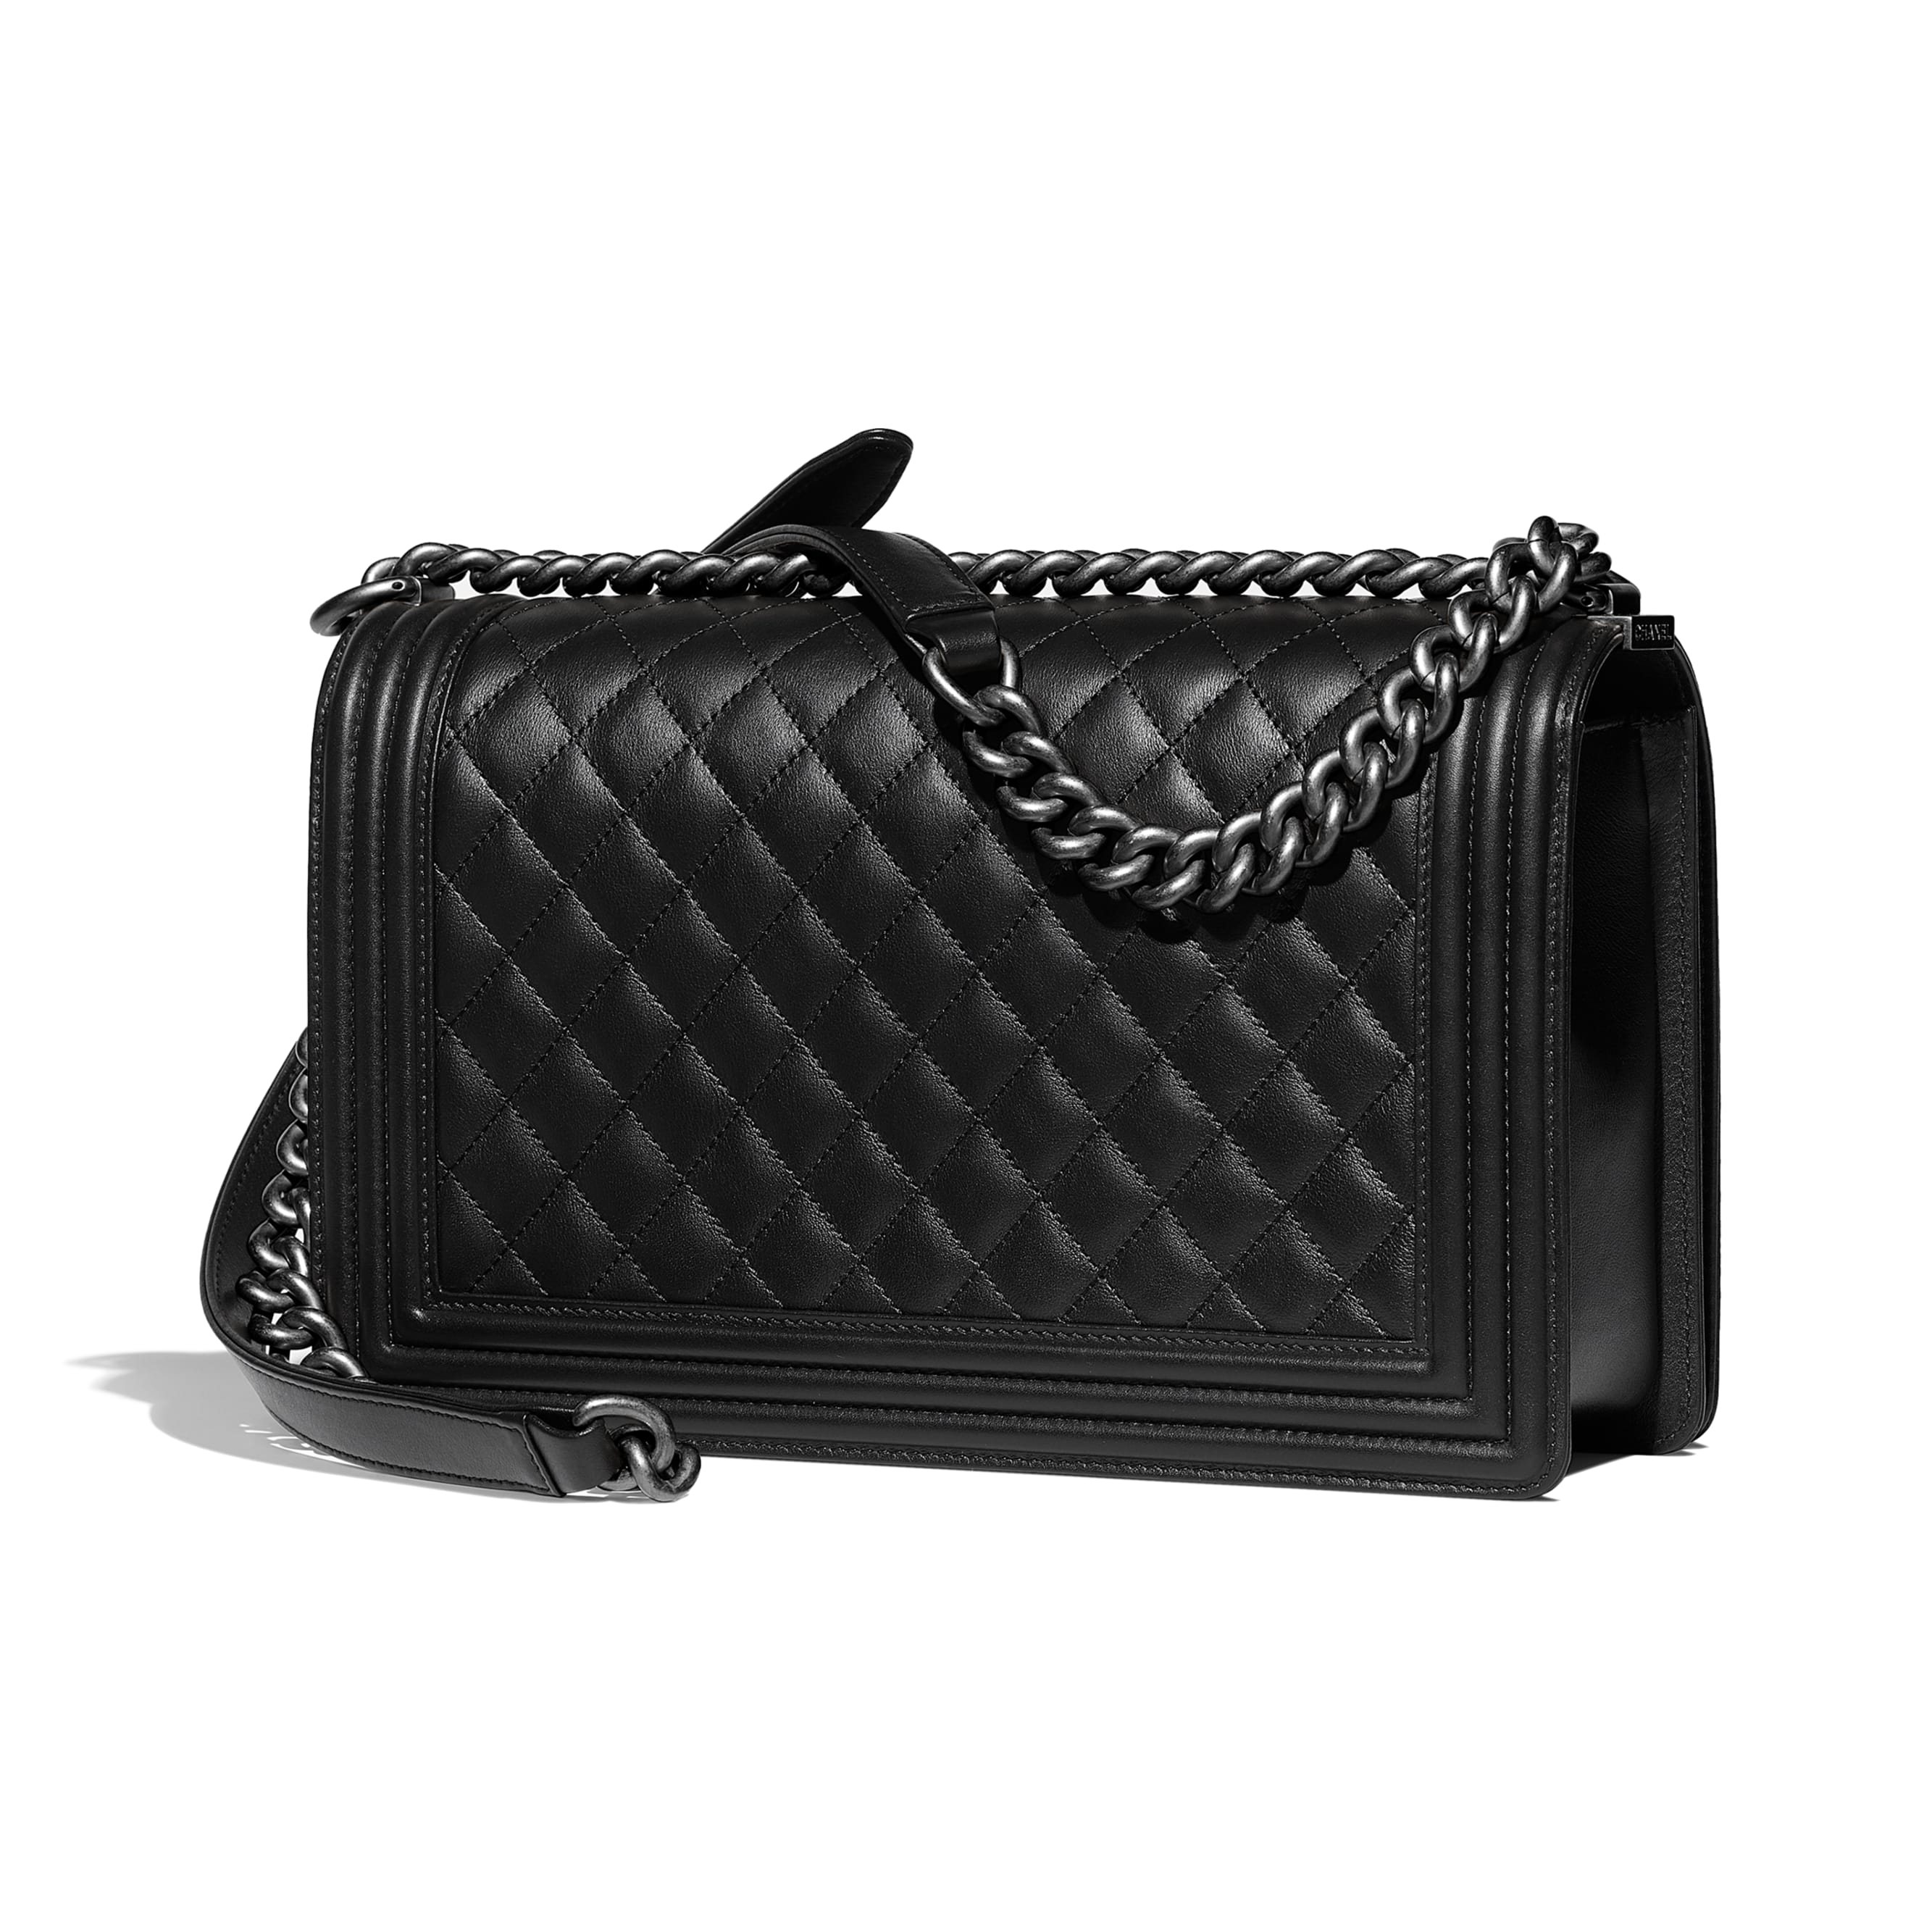 Large BOY CHANEL Handbag - Black - Calfskin & Ruthenium-Finish Metal - Alternative view - see standard sized version